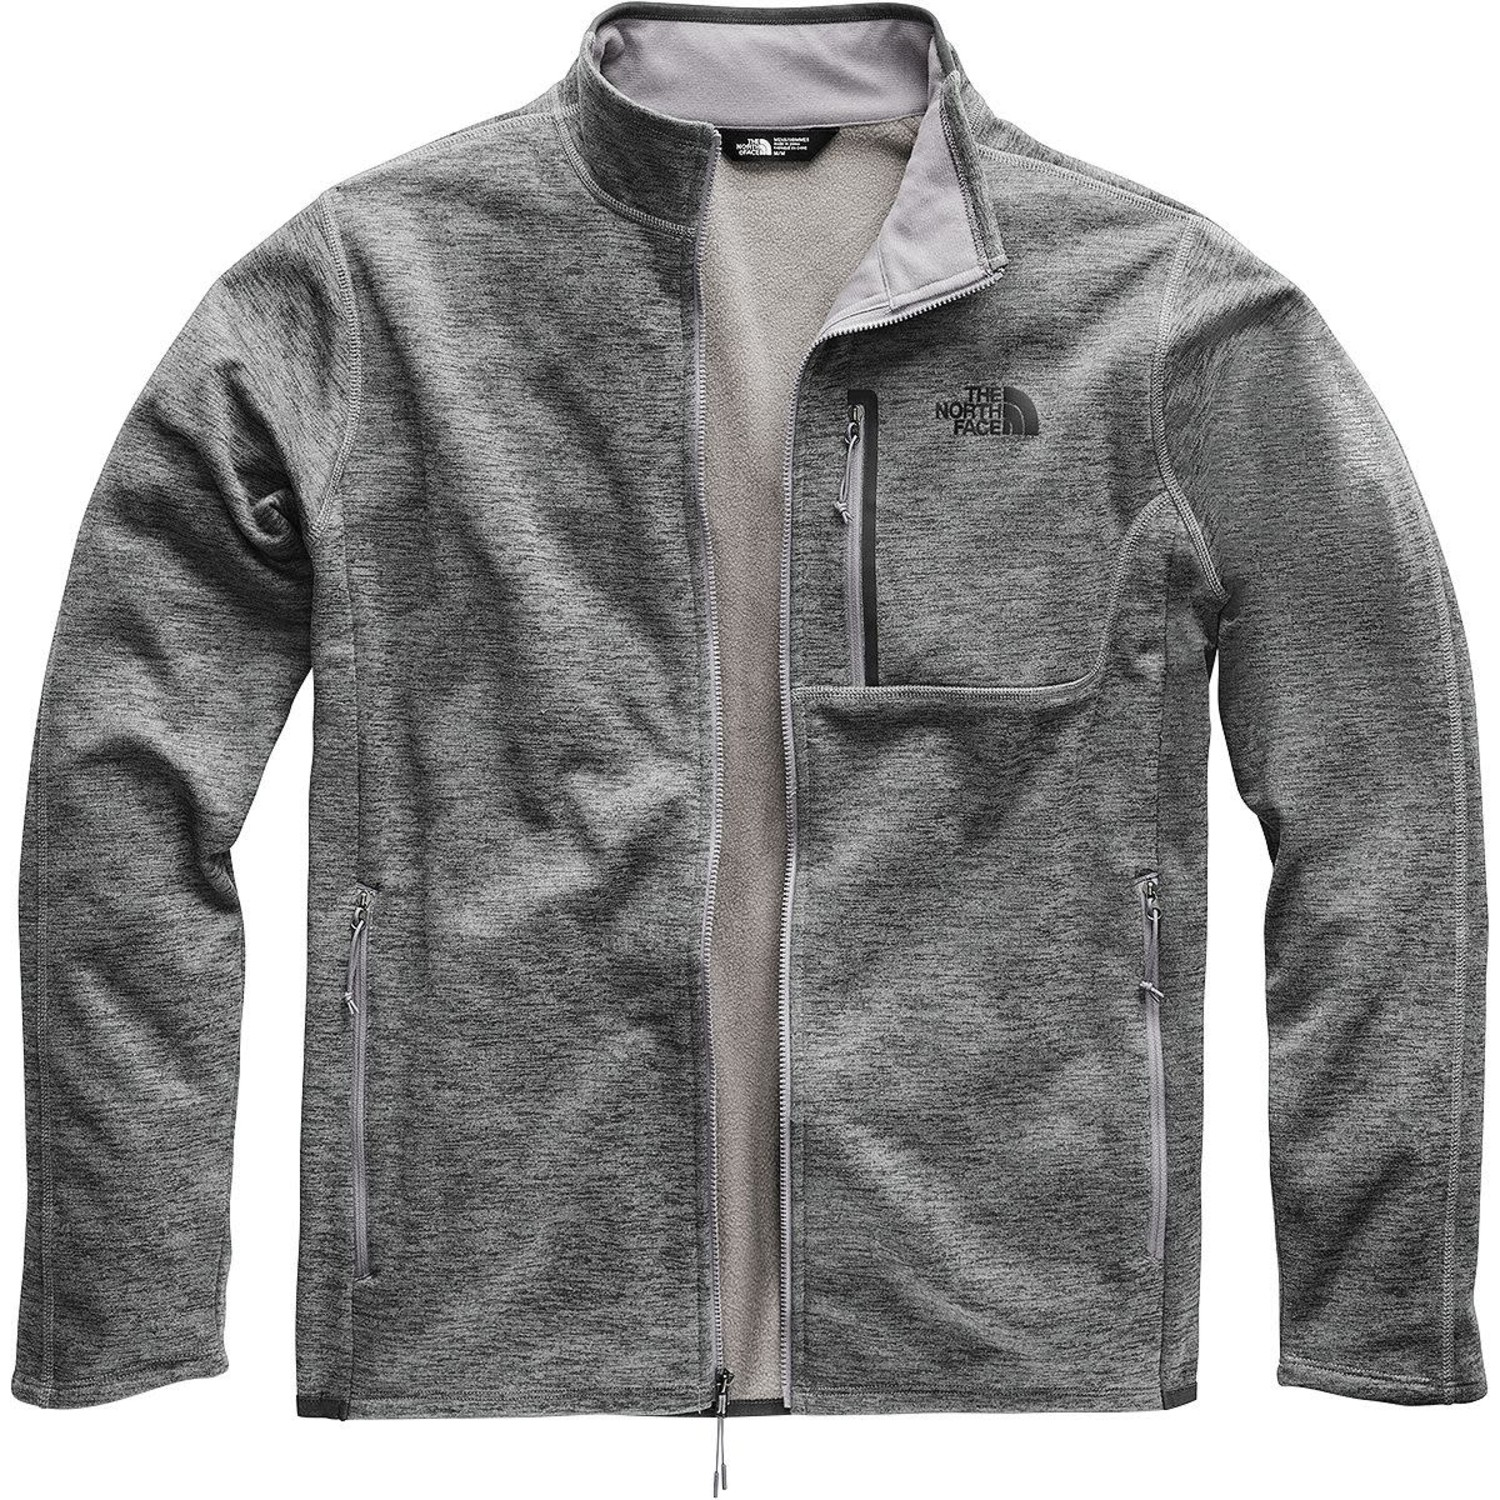 The North Face TNF Canyonlands Full Zip Mens Jacket Fleece Black New Collection!